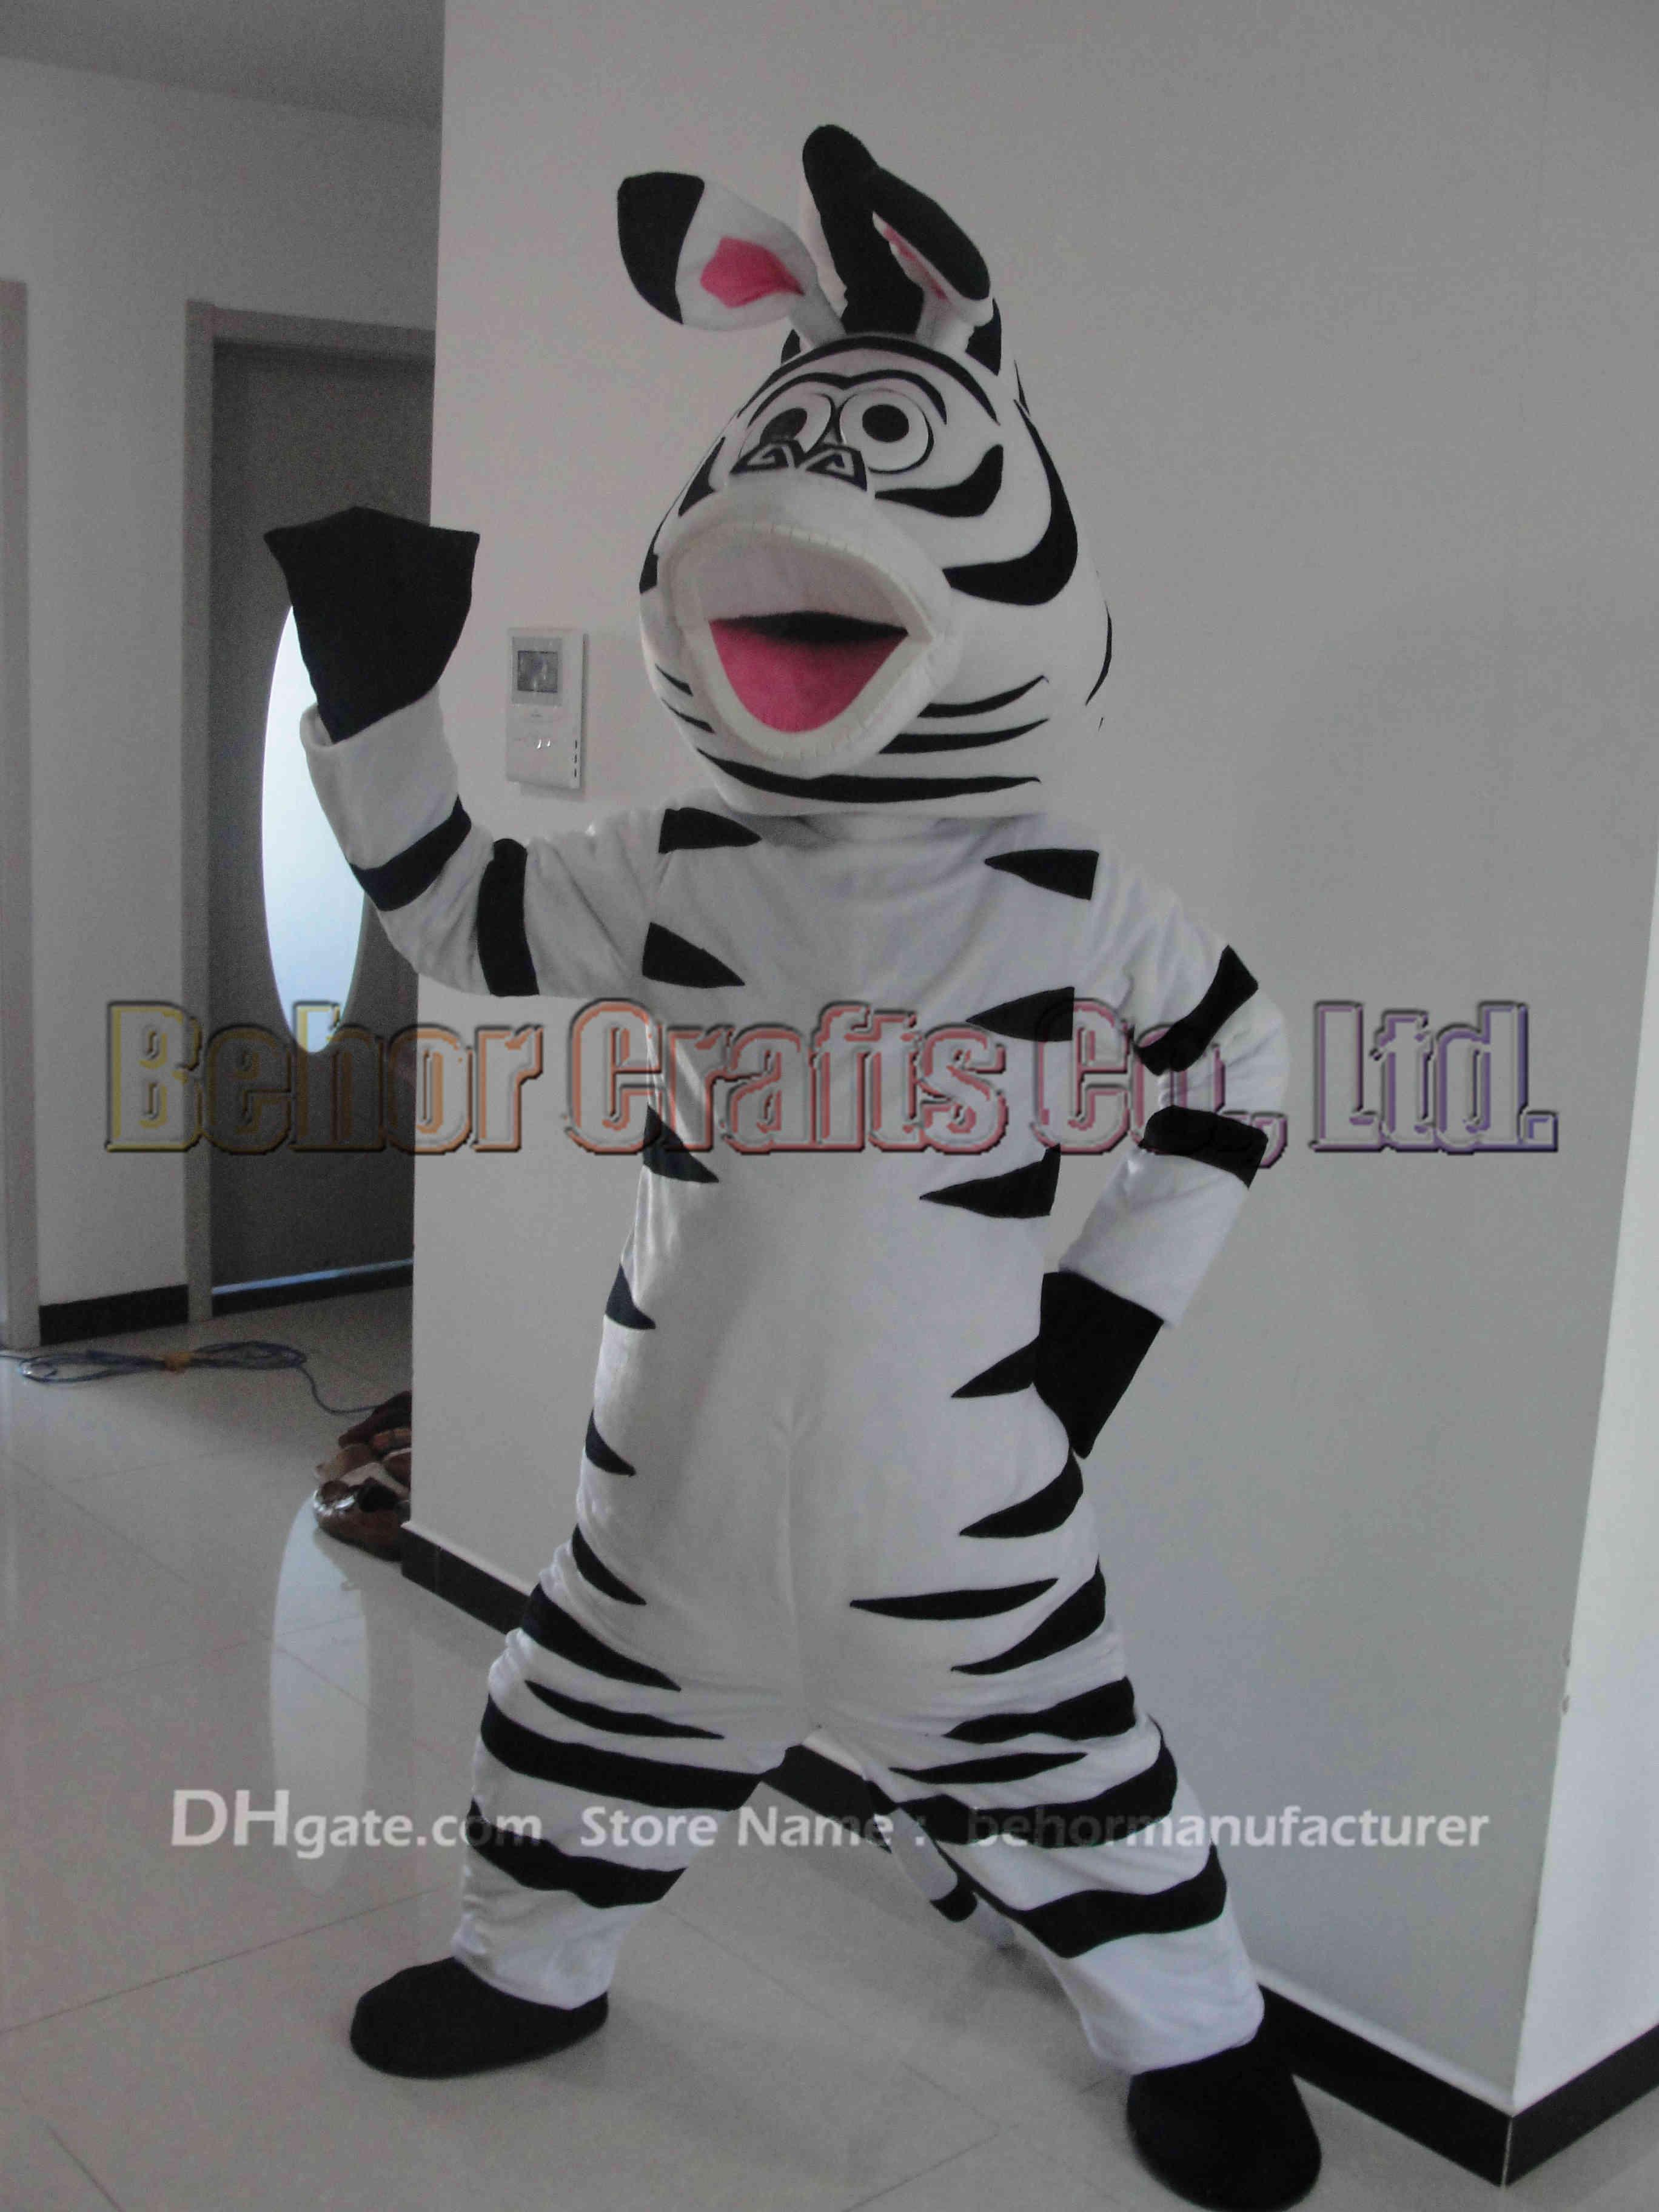 Marty Mascot Costume Cheap High Quality Carnival Party Fancy Plush Walking Madagascar Zebra Mascot Adult Size. Nun Costume Cheap Costumes From ... & Marty Mascot Costume Cheap High Quality Carnival Party Fancy Plush ...